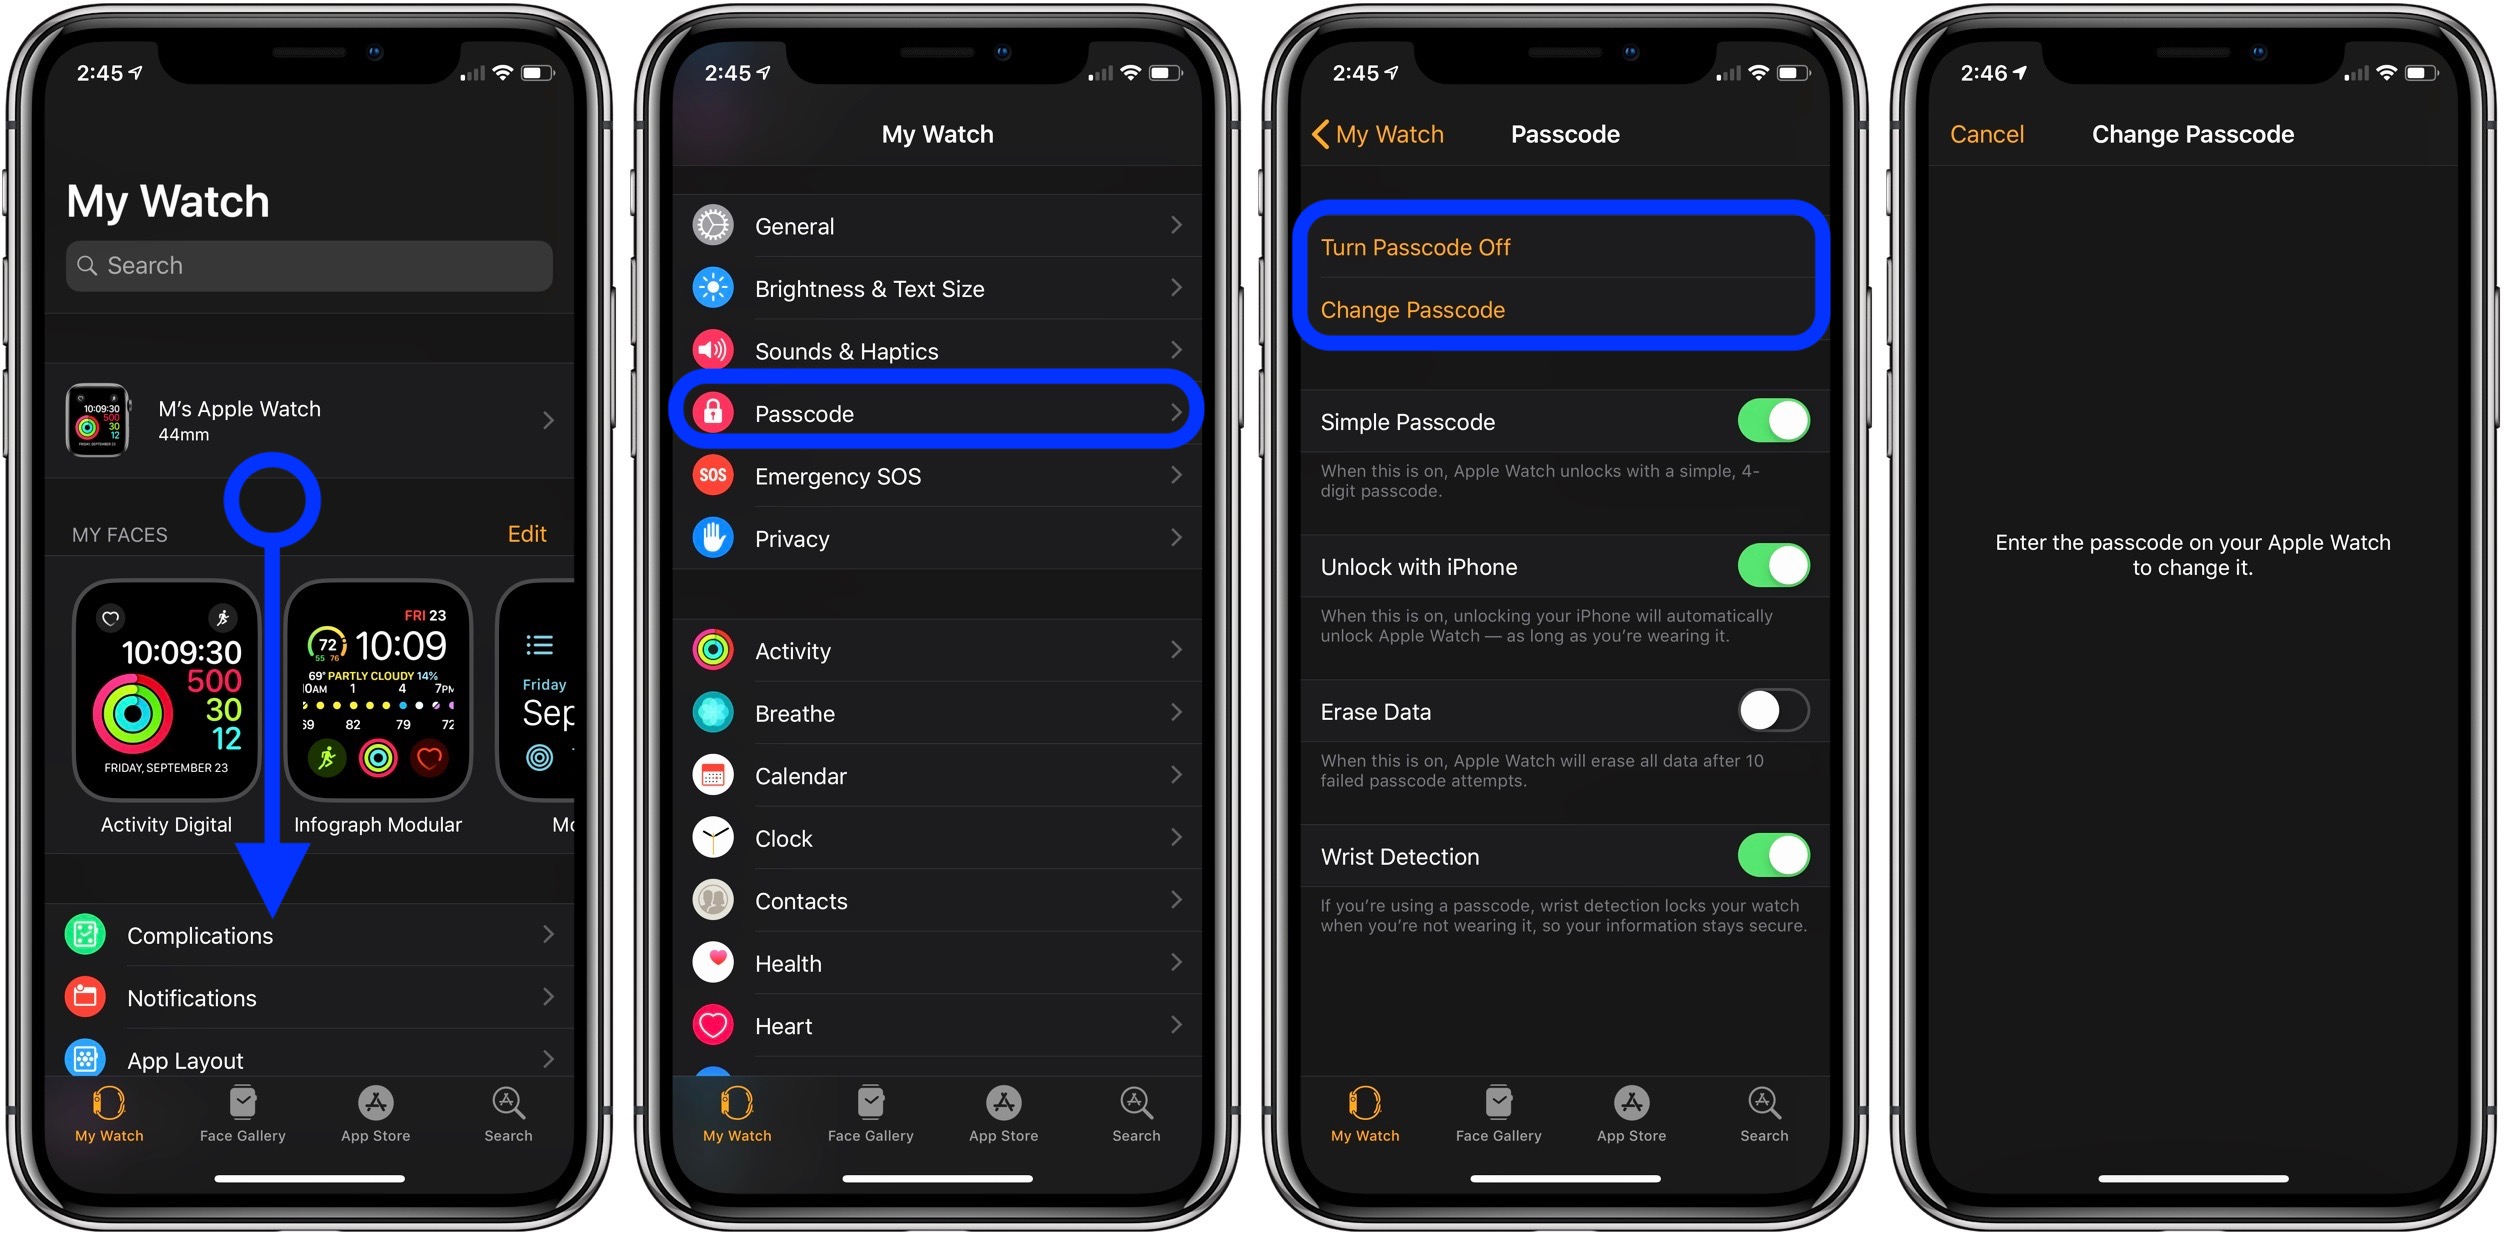 change or turn off Apple Watch passcode